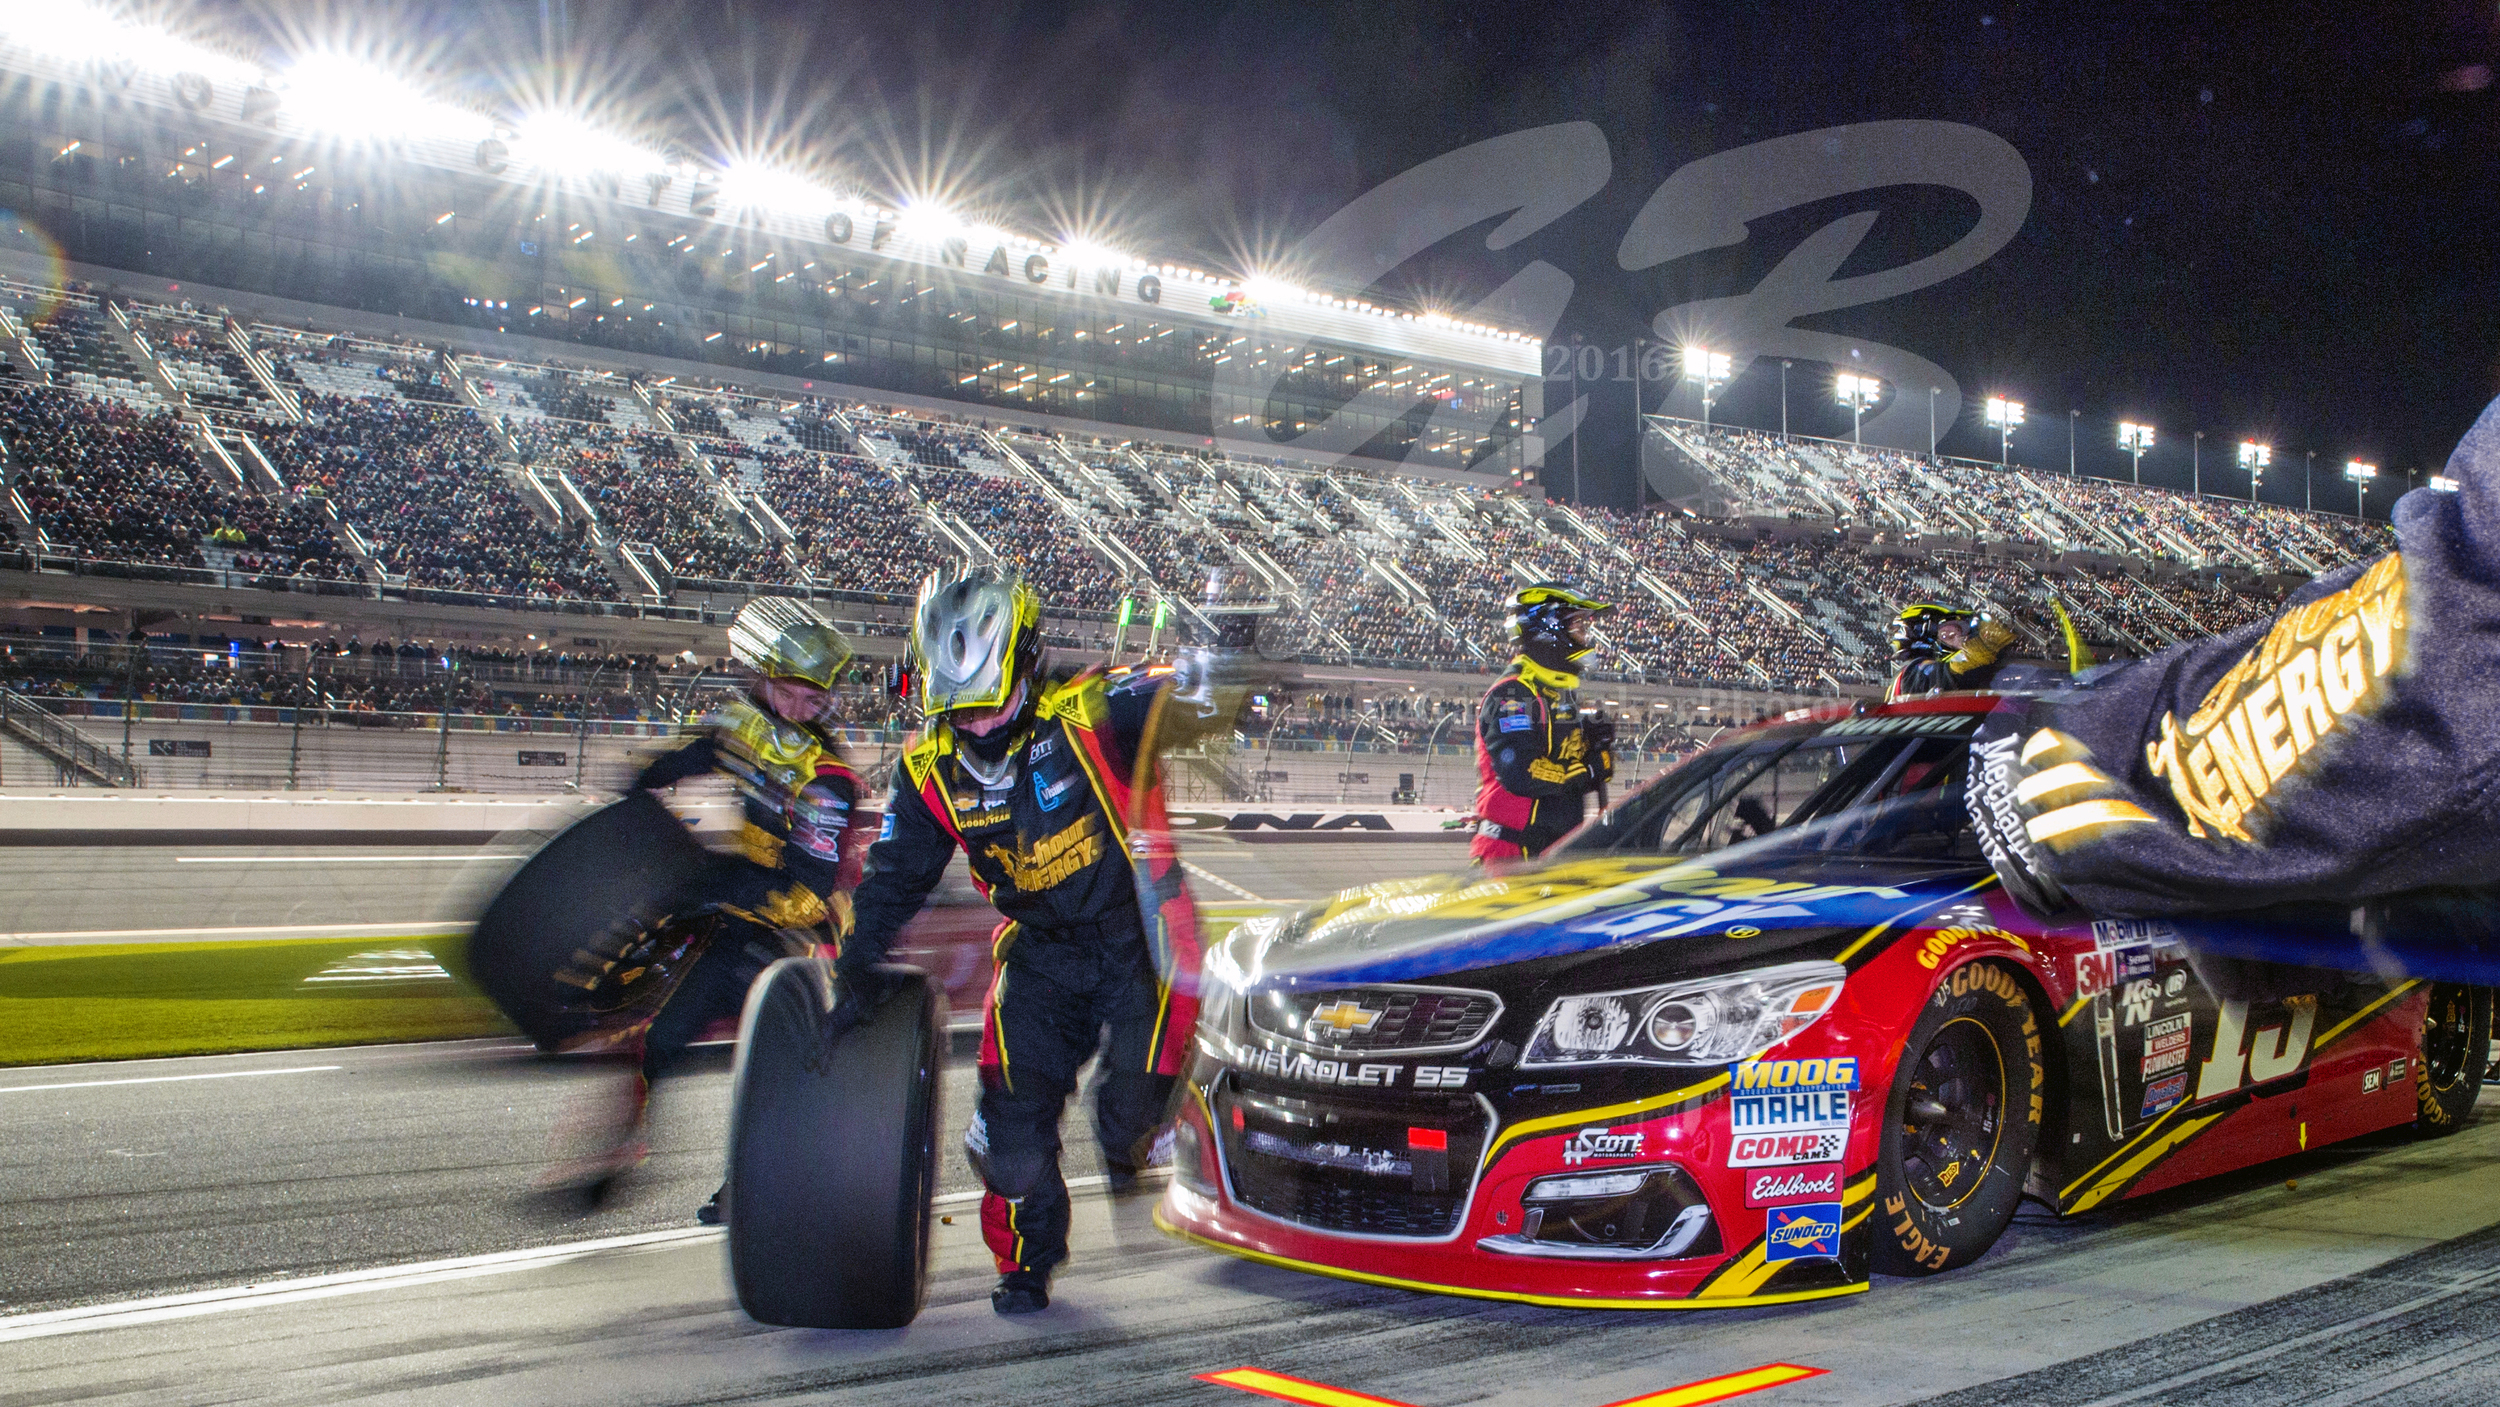 The 5-Hour Energy Chevy of Clint Bowyer gets its tires changed during a pit stop during the Can Am Race